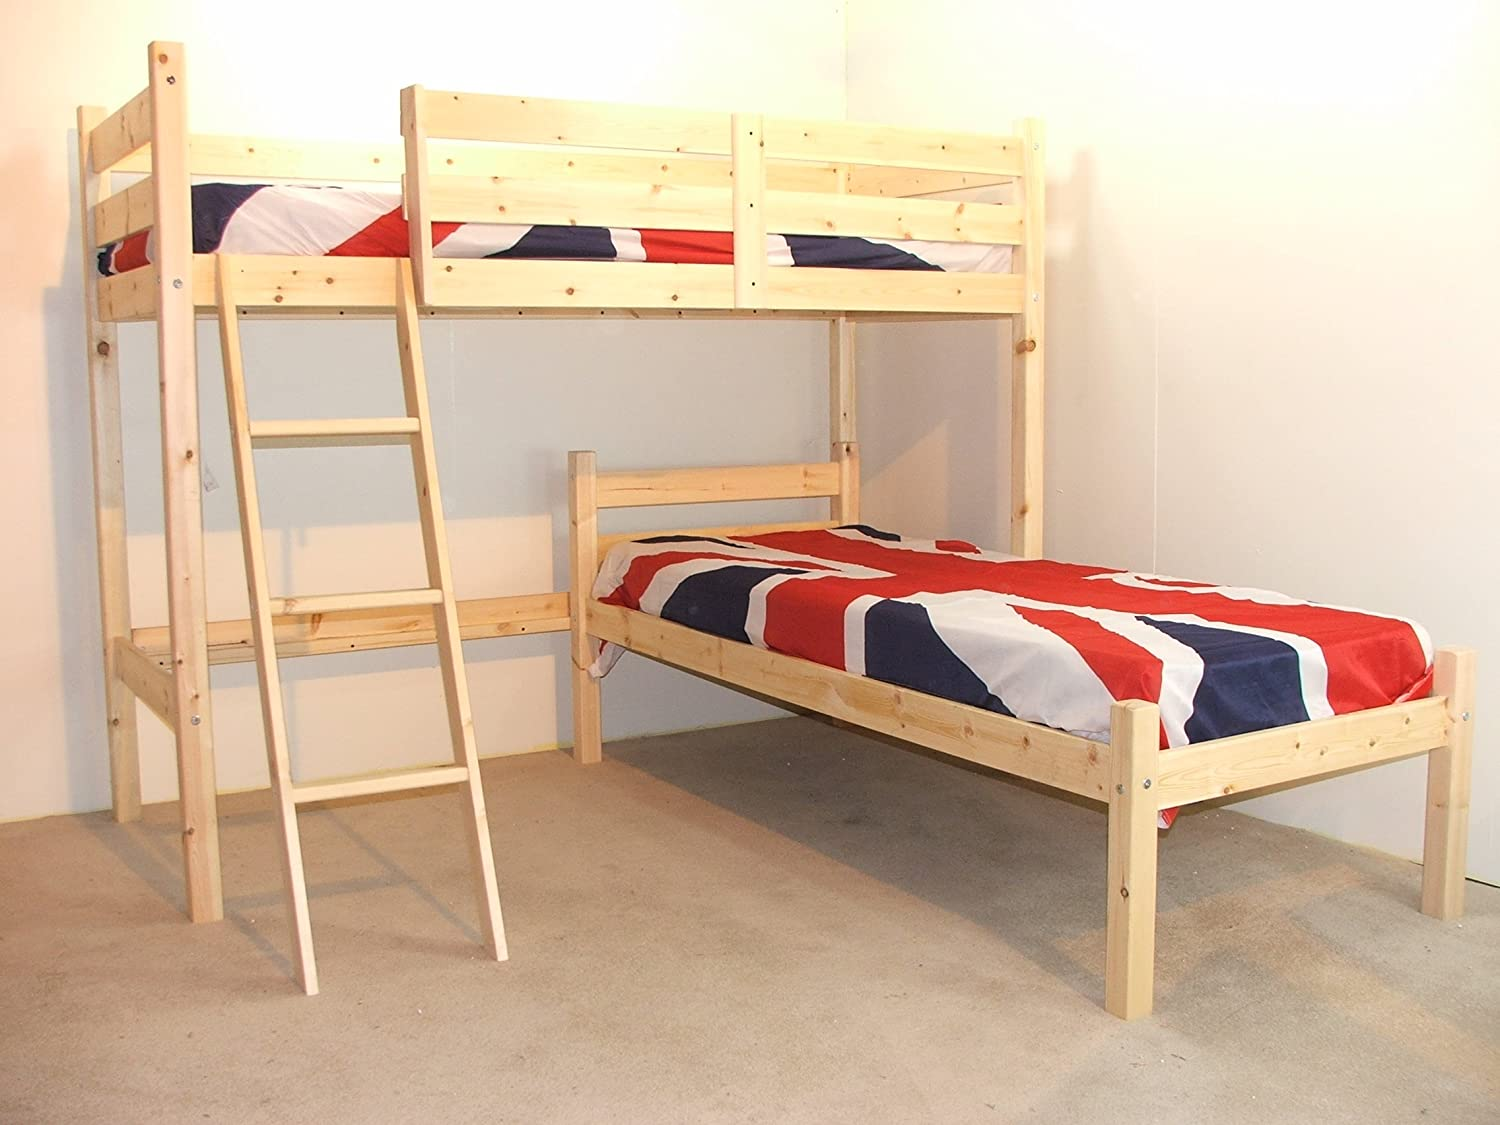 L SHAPED 3ft Bunkbed   Wooden LShaped Bunk Bed For Kids   FAST DELIVERY:  Amazon.co.uk: Kitchen U0026 Home